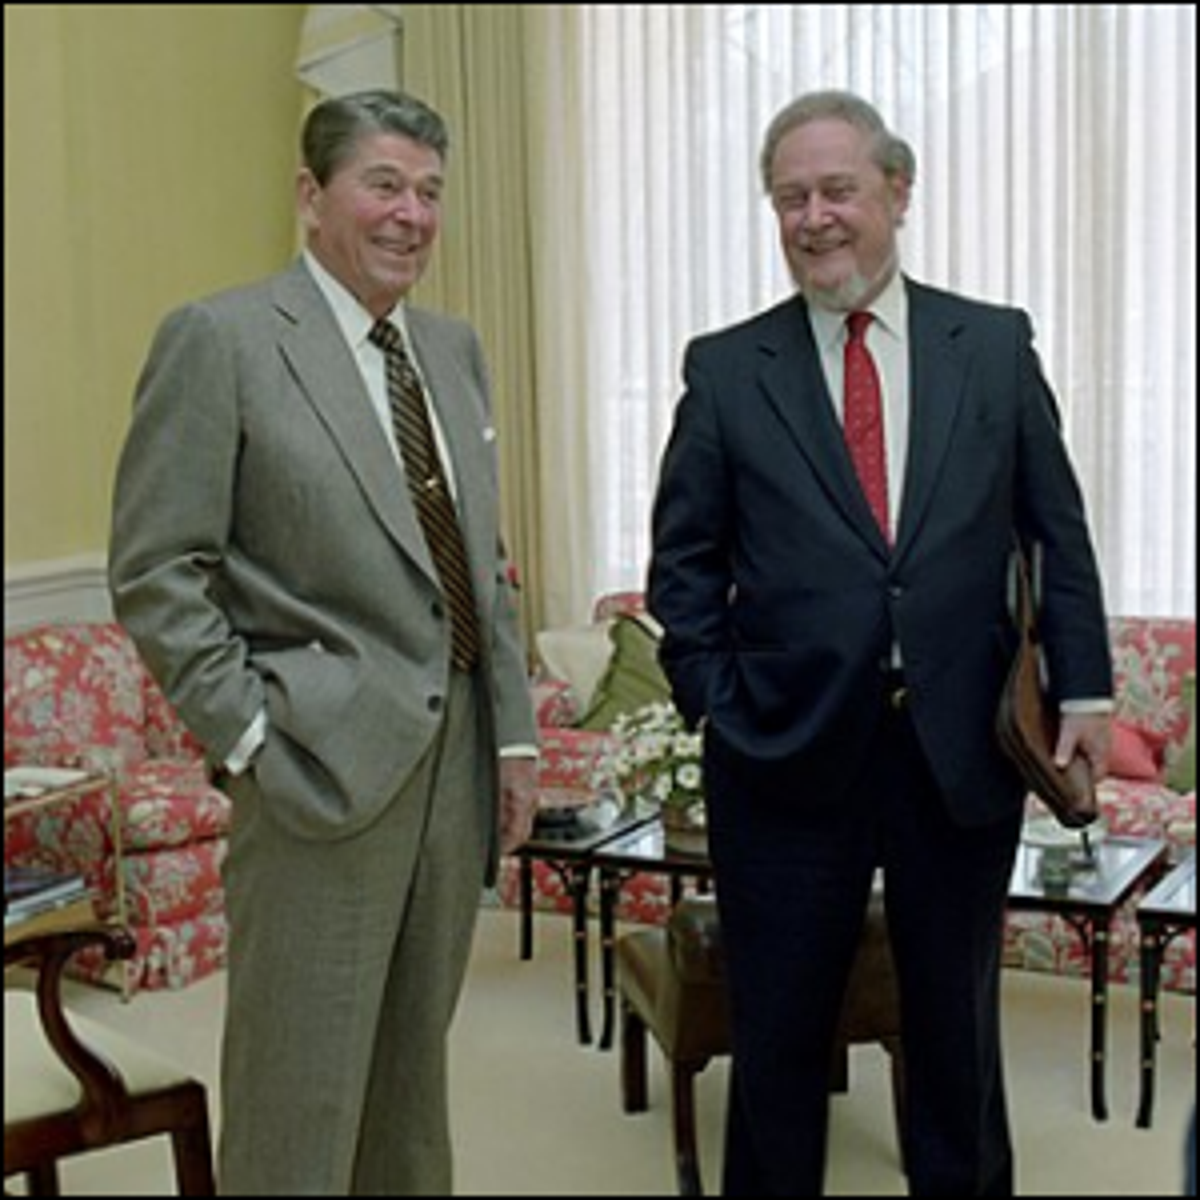 Ronald Reagan meeting with Robert Bork in The White House.